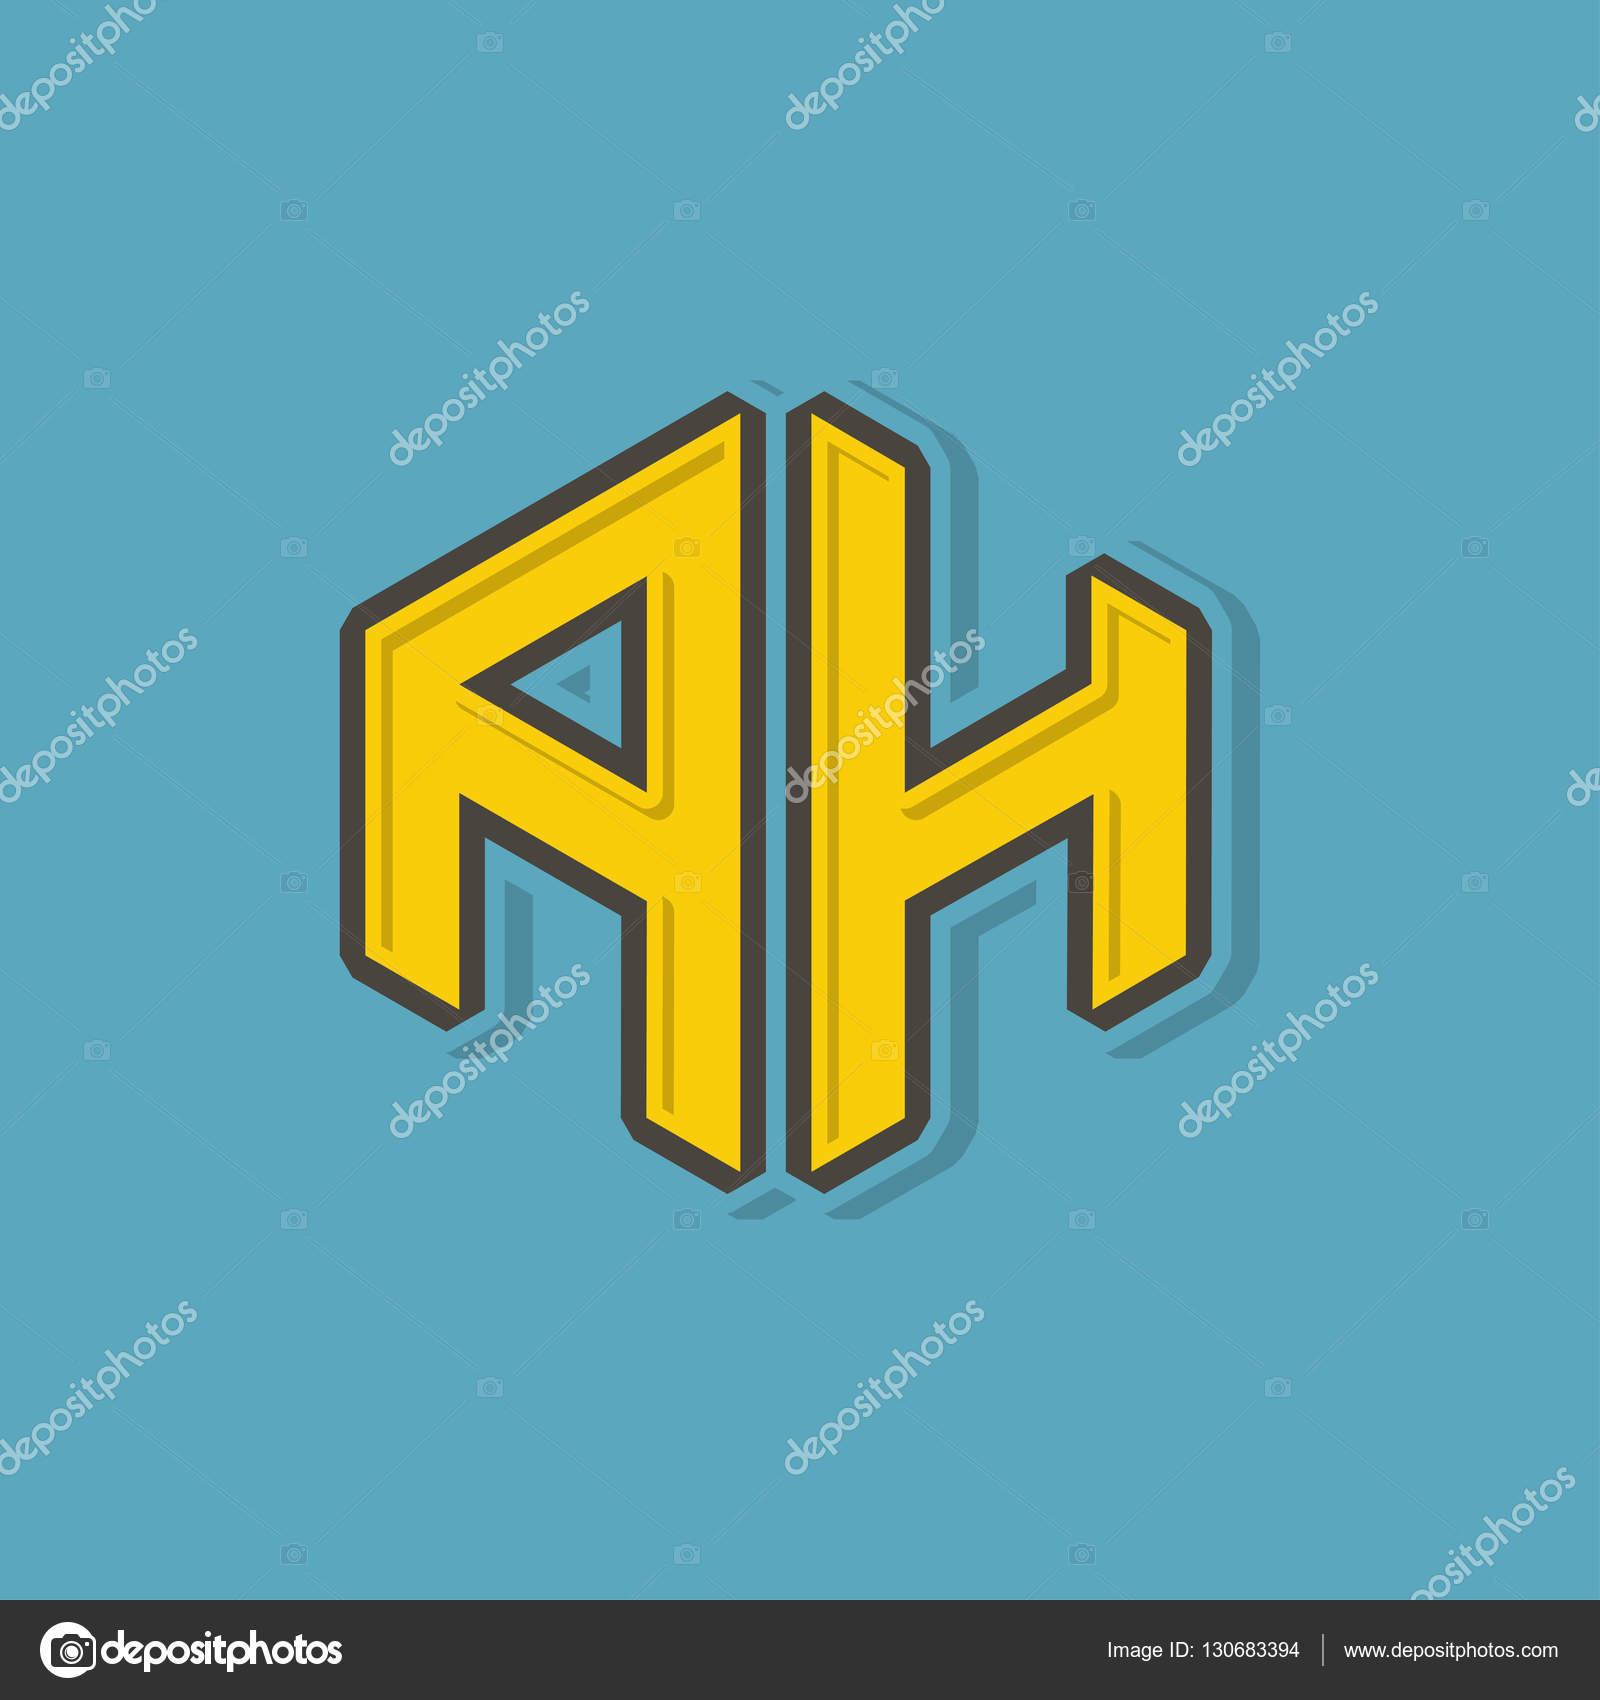 A H Monogram Lettering With 3d Style For Corporate Business Identity Design Printing Publication T Shirt Design Vector Illustration Stock Vector C Jumpeestudio 130683394